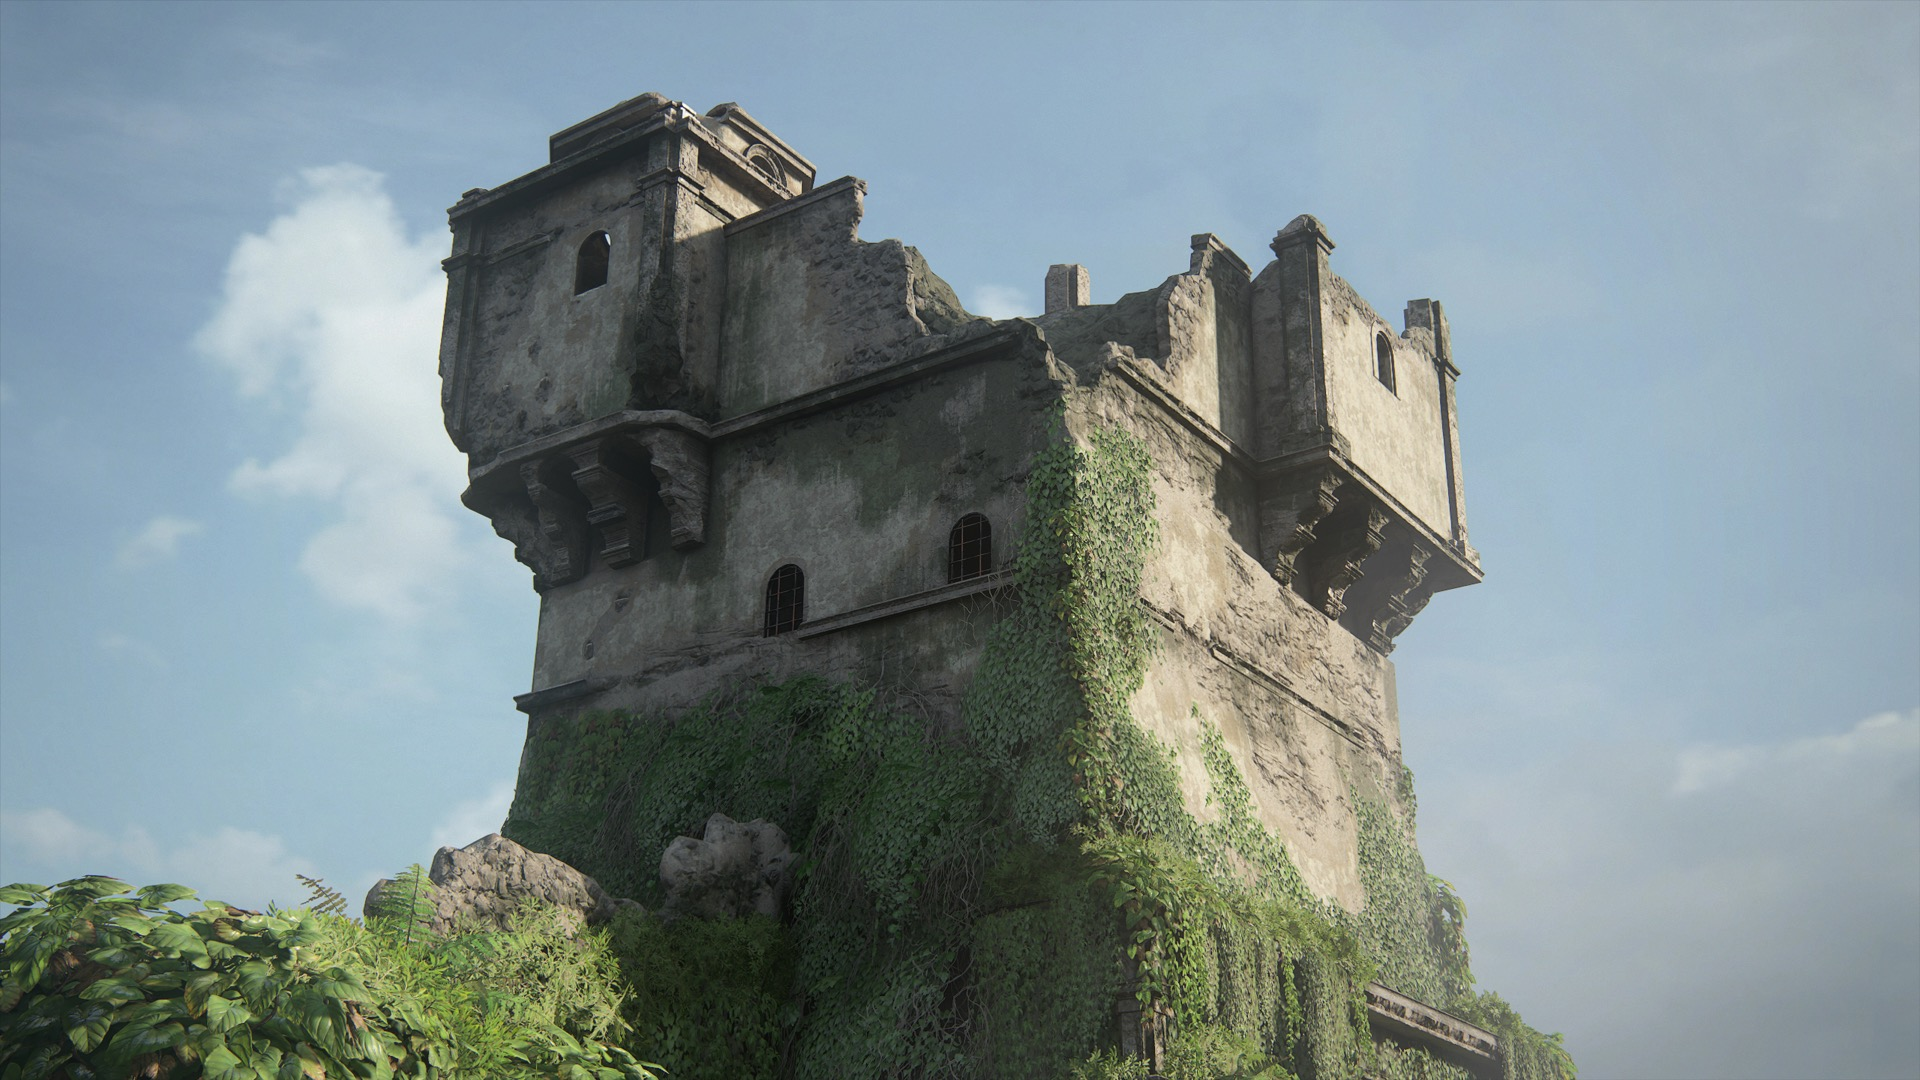 Uncharted 4: A Thief's End 'Infernal Place' collectible locations guide